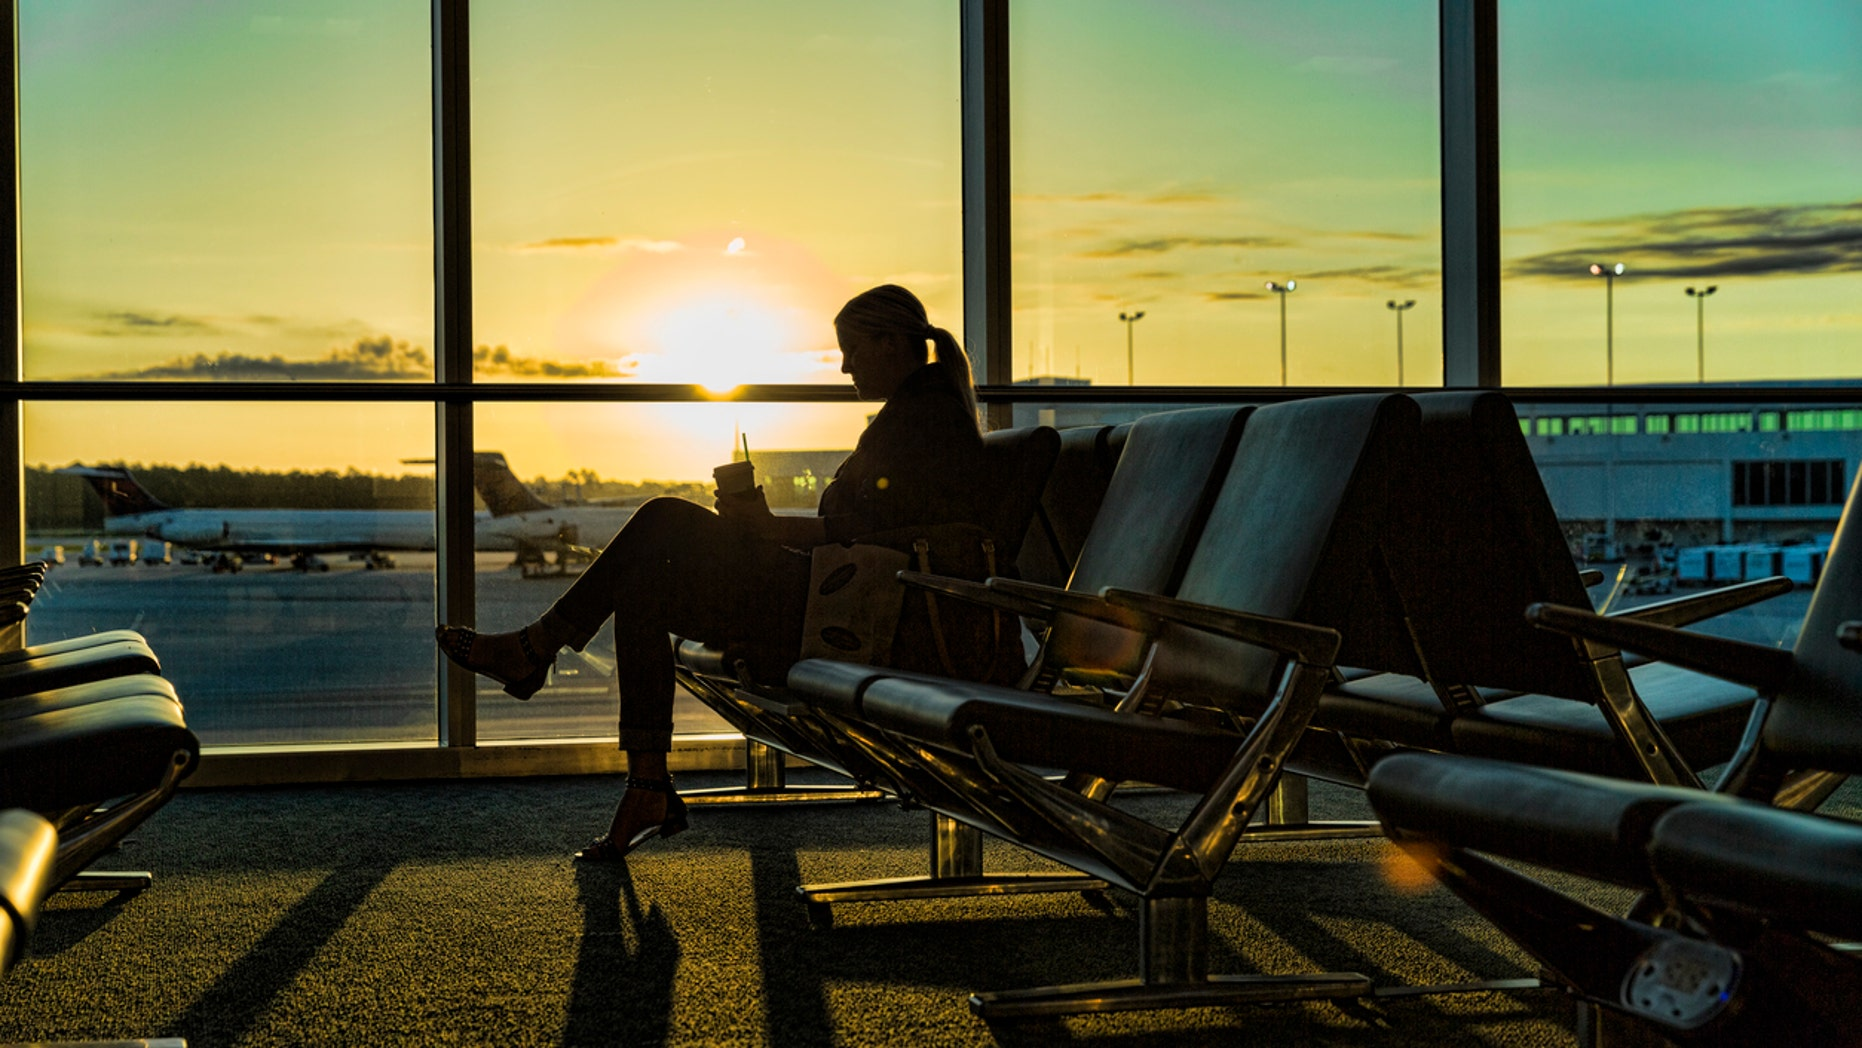 A woman sits at the airport waiting for her plane. She is enjoying a drink and snack as the sun rises.